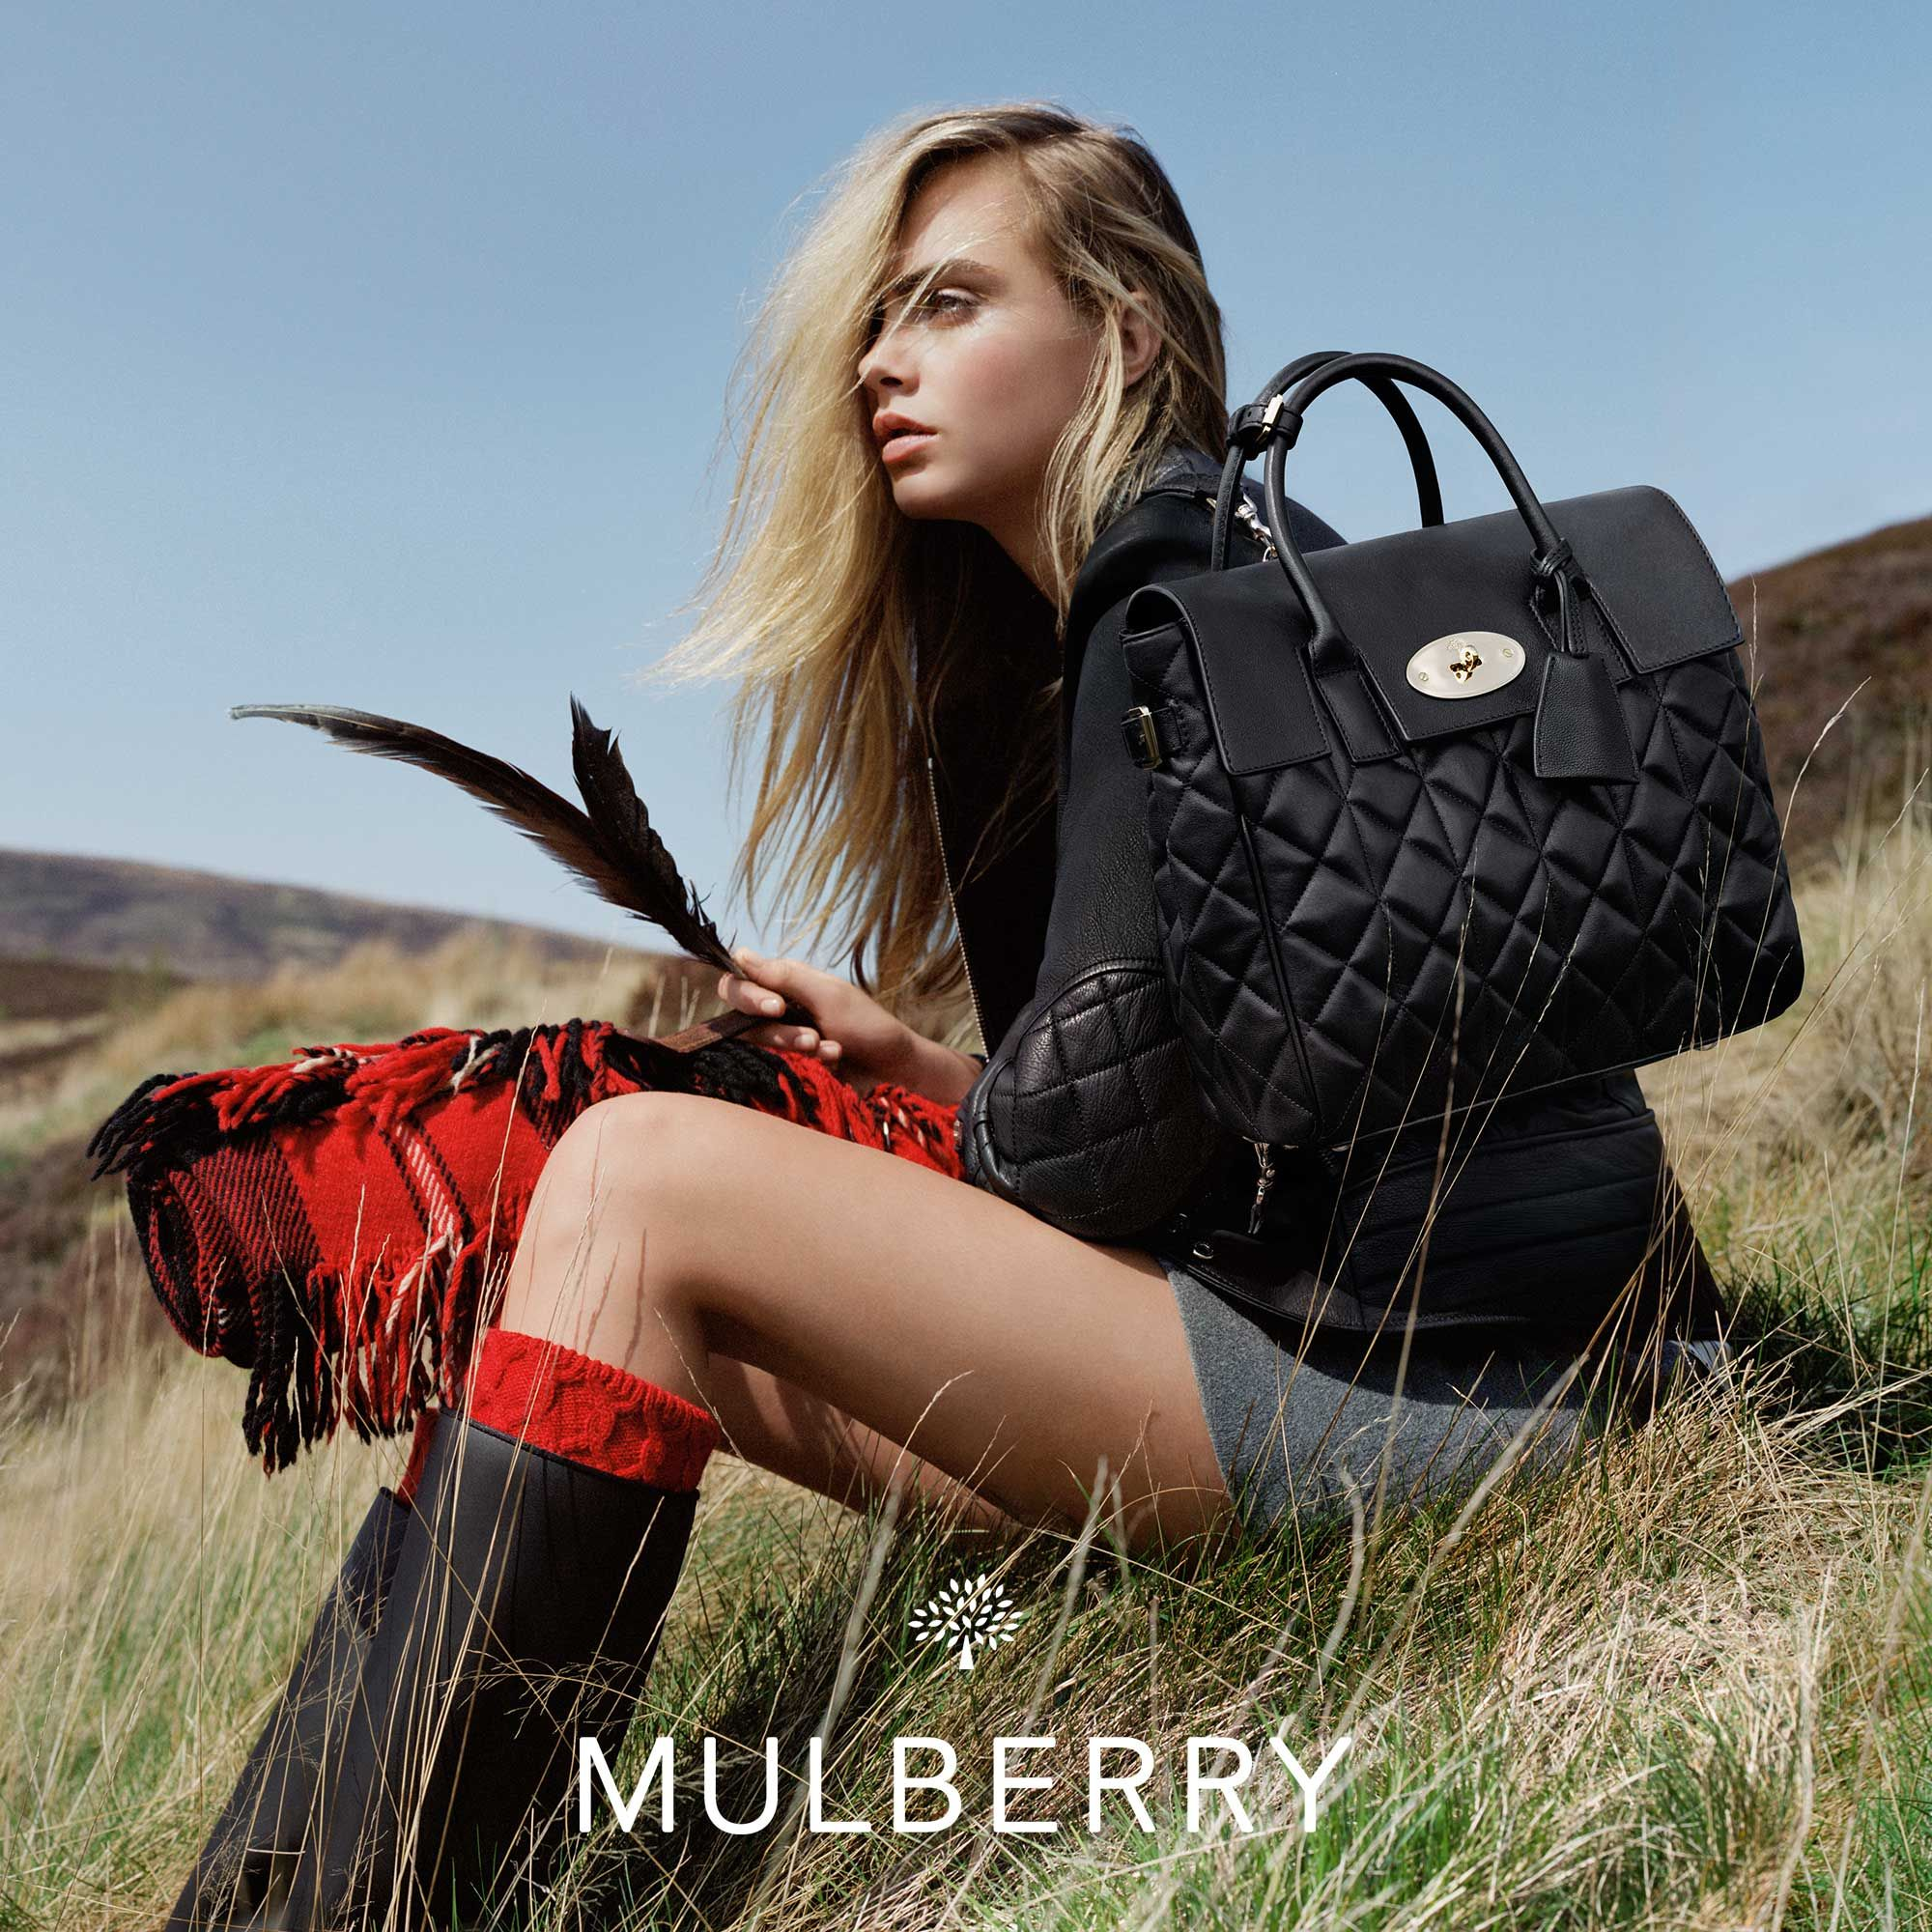 7a88af5d4201 The Mulberry Cara Delevingne Collection has launched online and in stores!